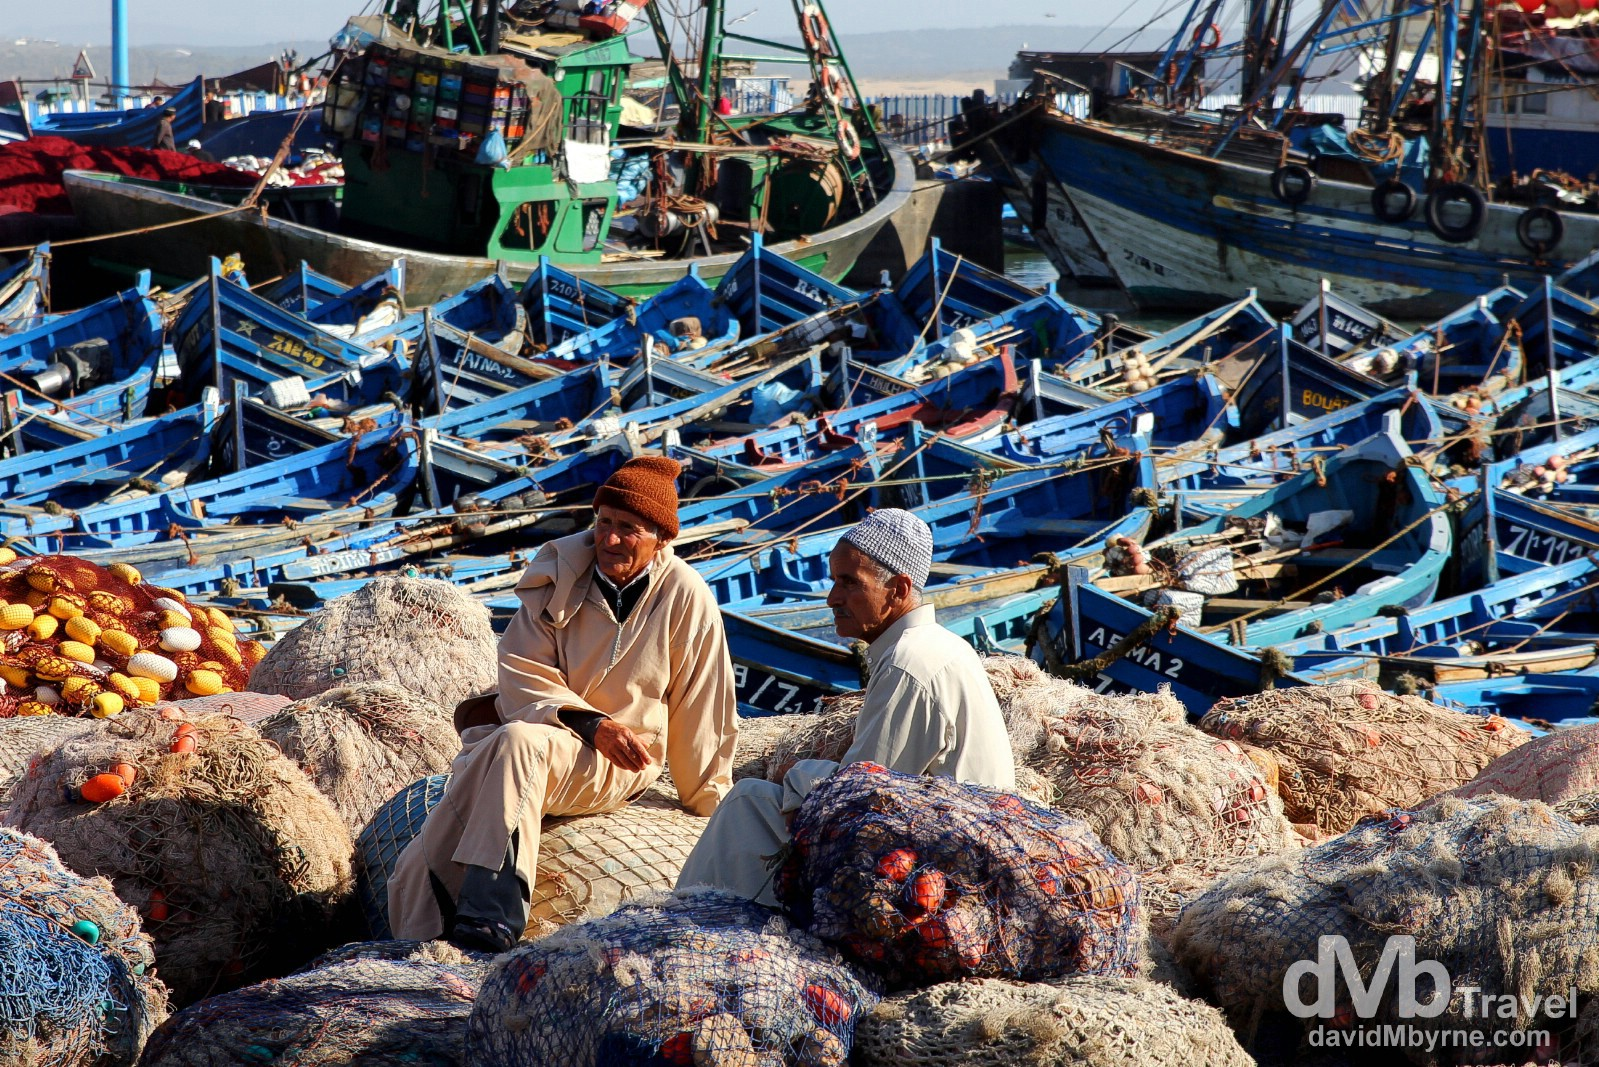 Locals sit on the nets in the port in Essaouira, Morocco. May 3rd, 2014.